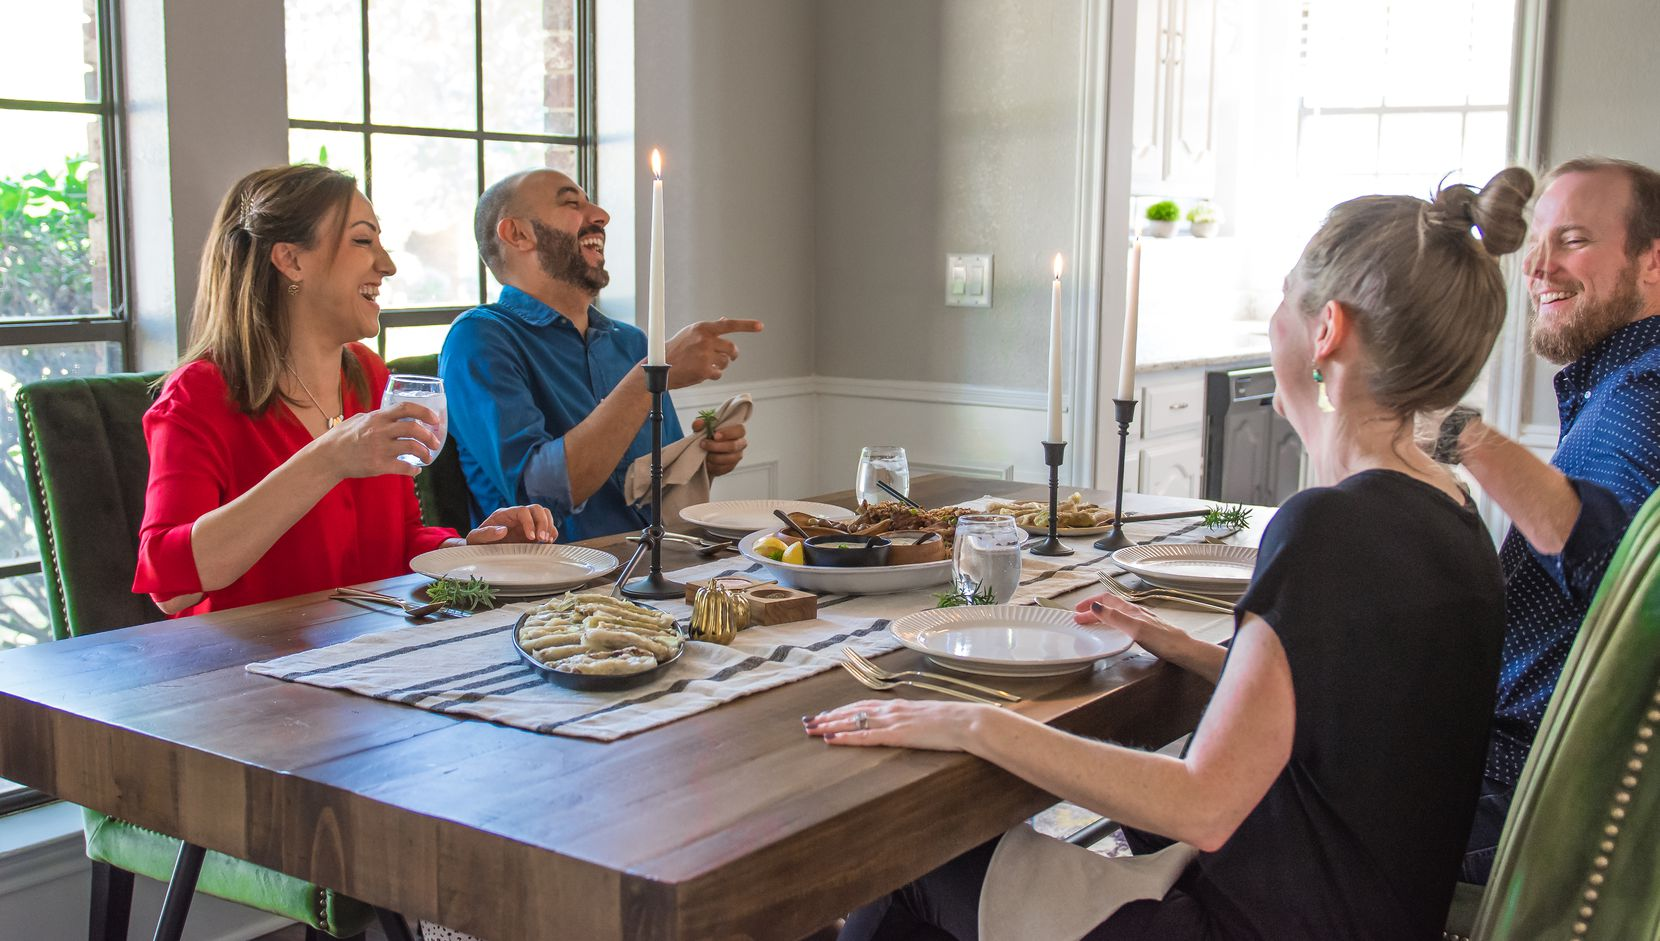 Tamara Abuomar and husband Feras Abumuwis eat a meal with writer and neighbor Rebecca White and her husband Randy White.